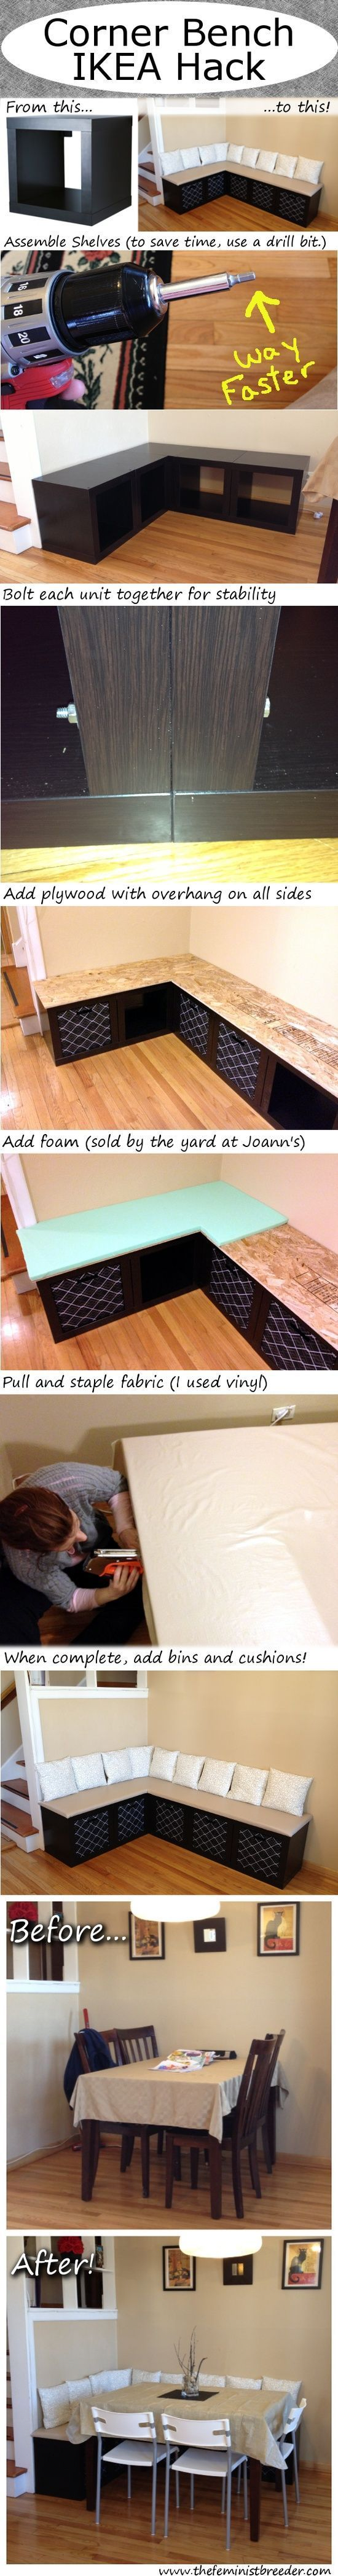 A corner bench with storage made from some IKEA wall shelves and a little upholstering. All done in less than one day.. - elegant decor